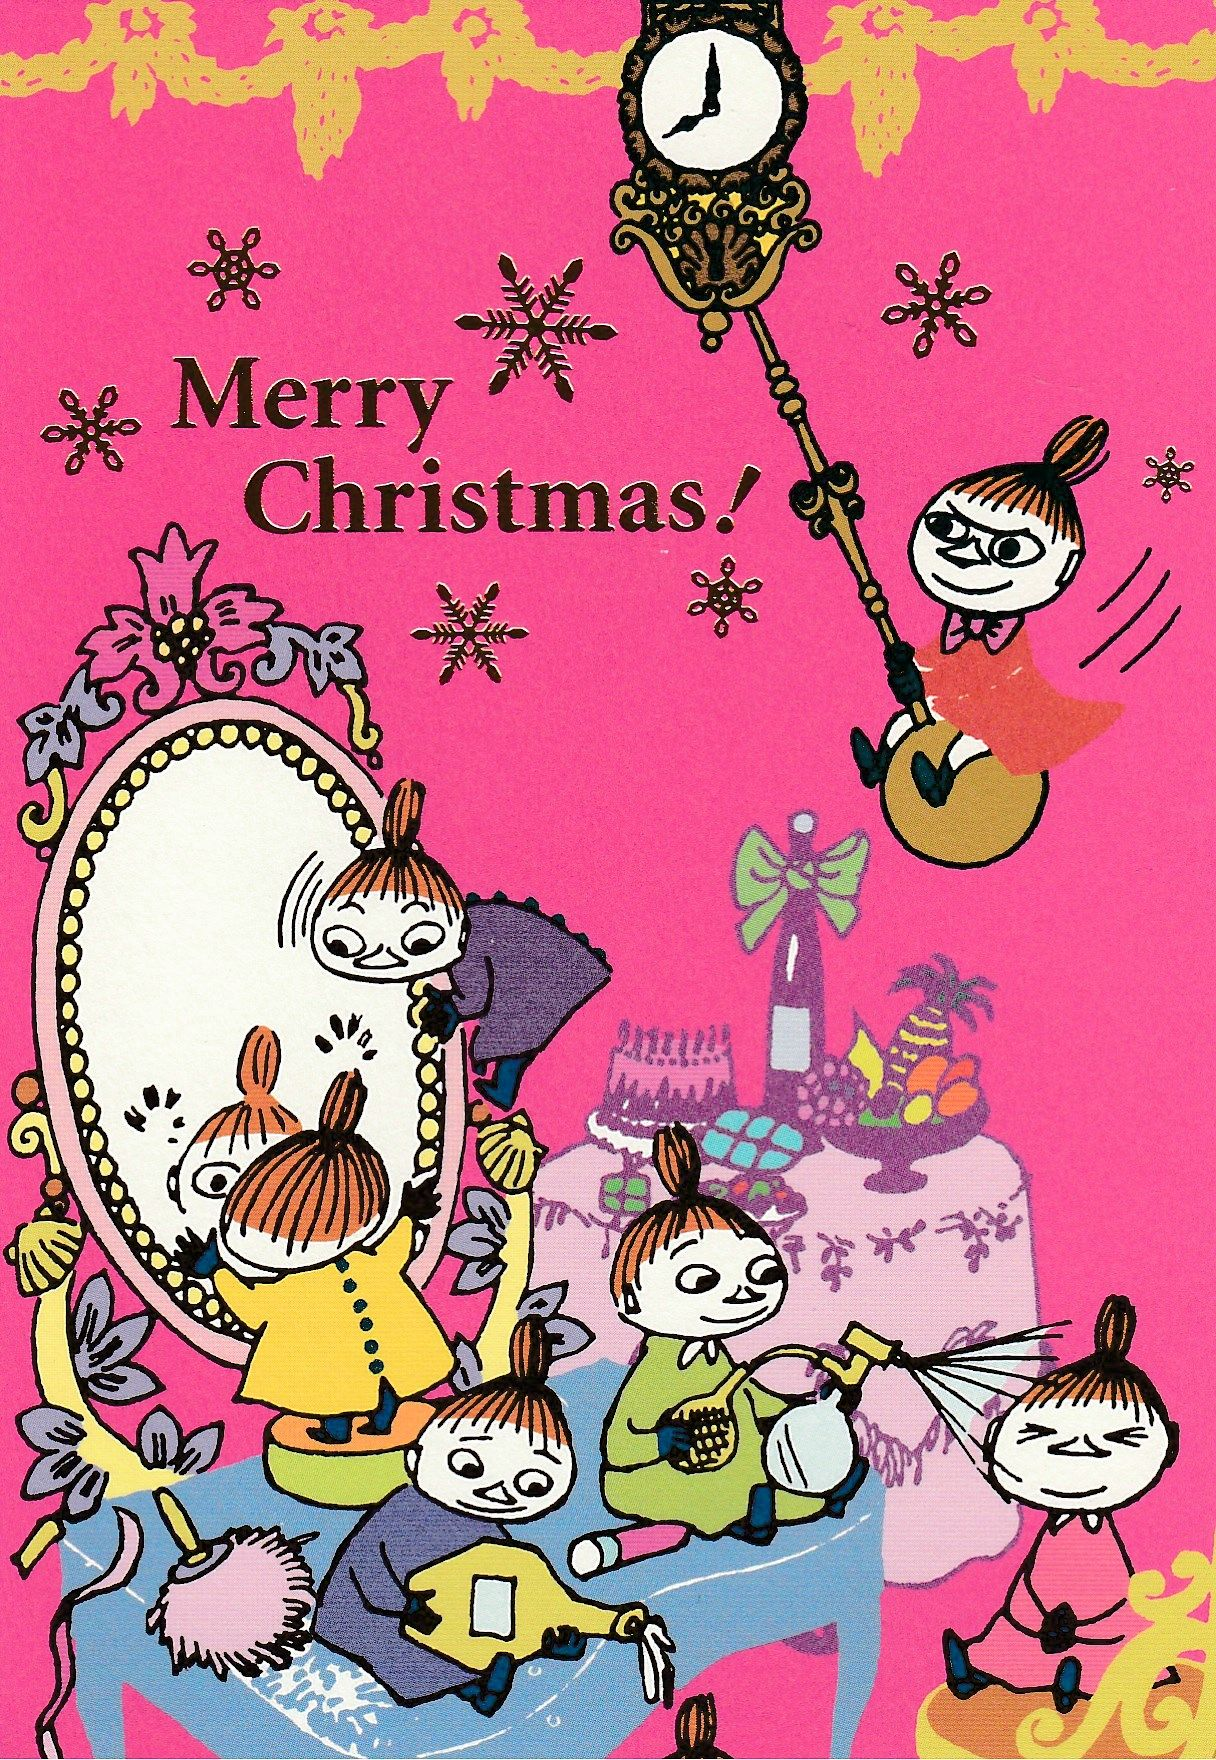 Merry Christmas From The Moomins ムーミン 壁紙 リトルミイ 画像